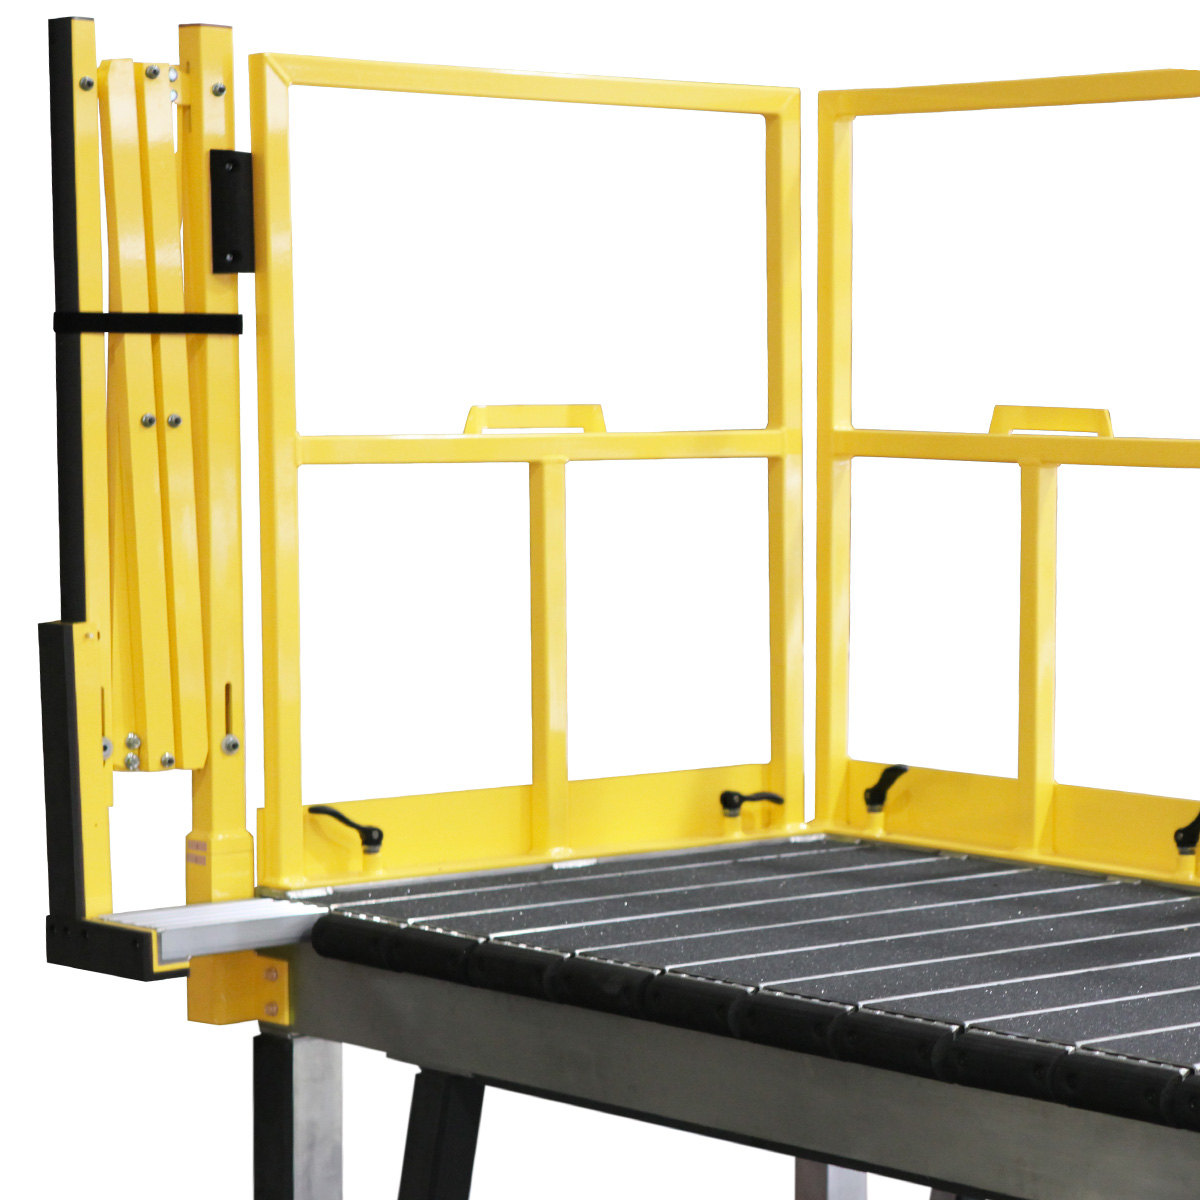 OSHA compliant custom, detachable powder coat guardrails for 4-side fall protection or 3-side fall protection that allows access to equipment.